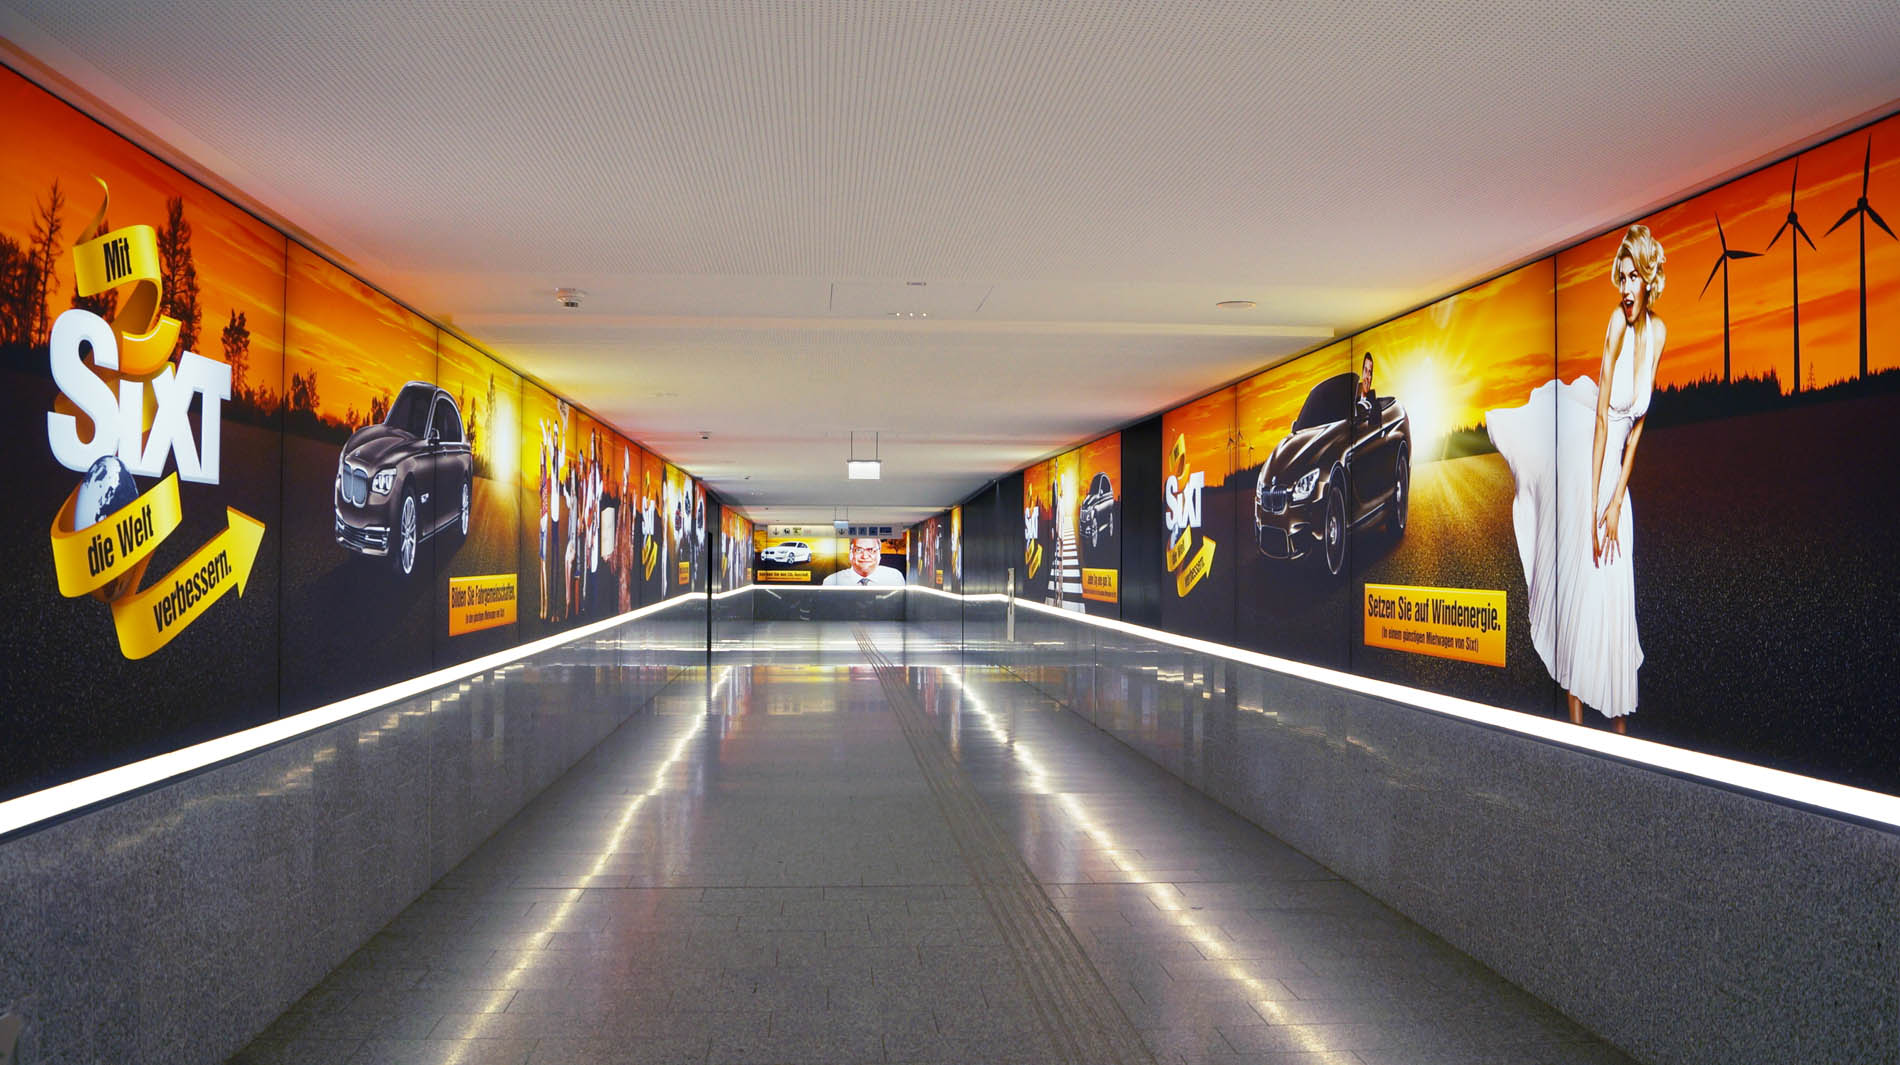 SIXT Airport Marketing, corridor view